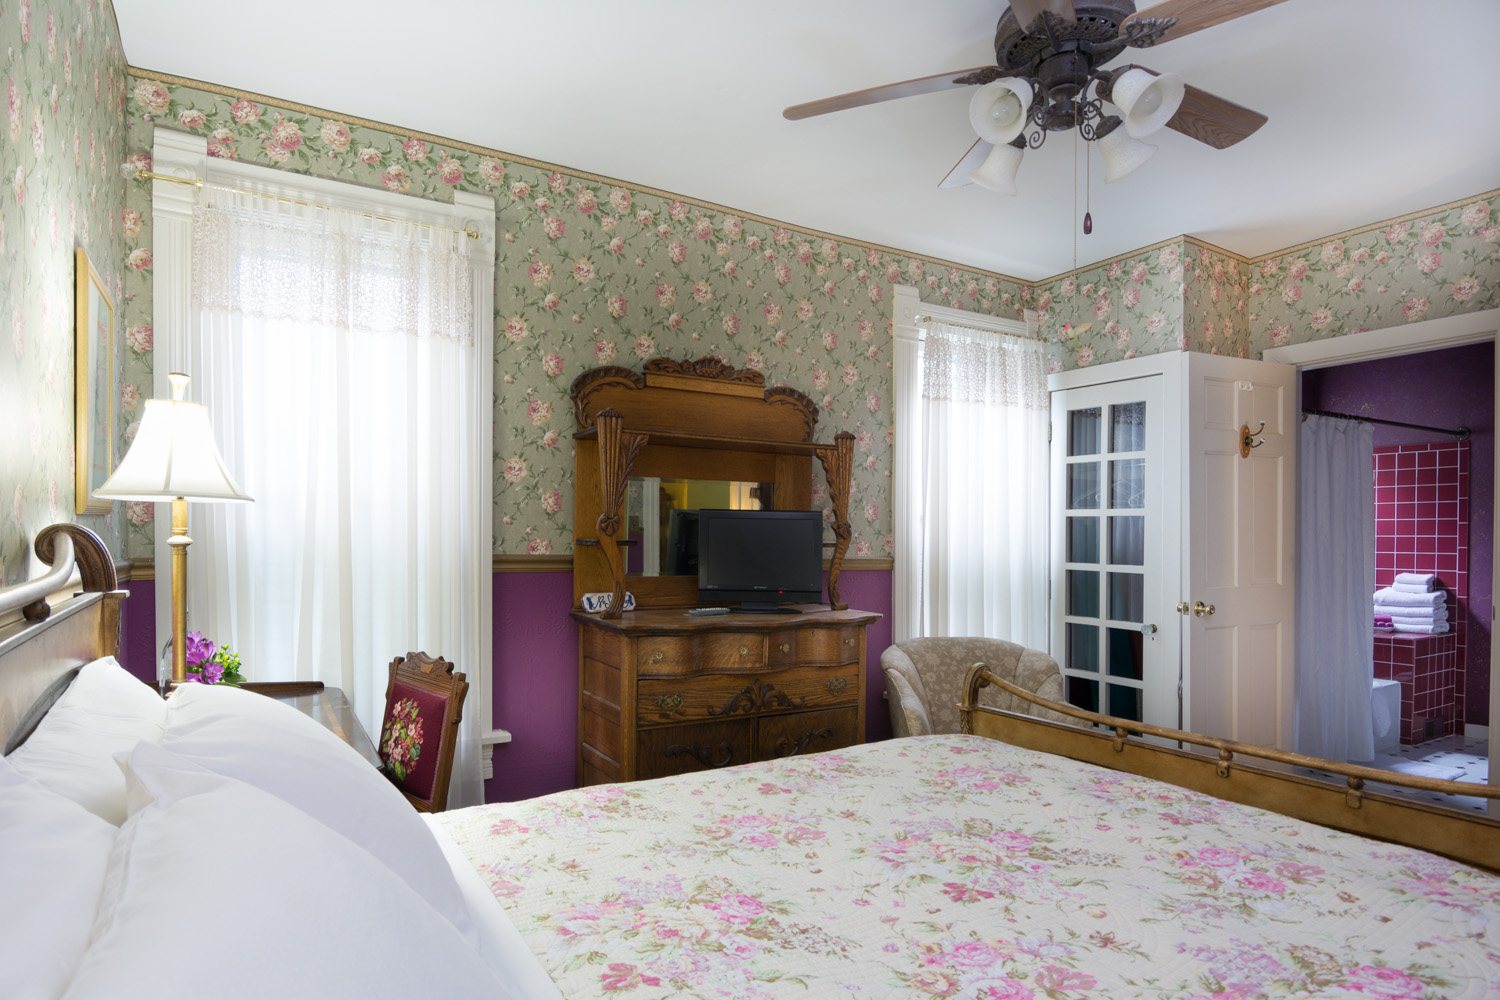 Harrison-House-Bed-and-Breakfast-Columbus-Ohio-Room-3-2